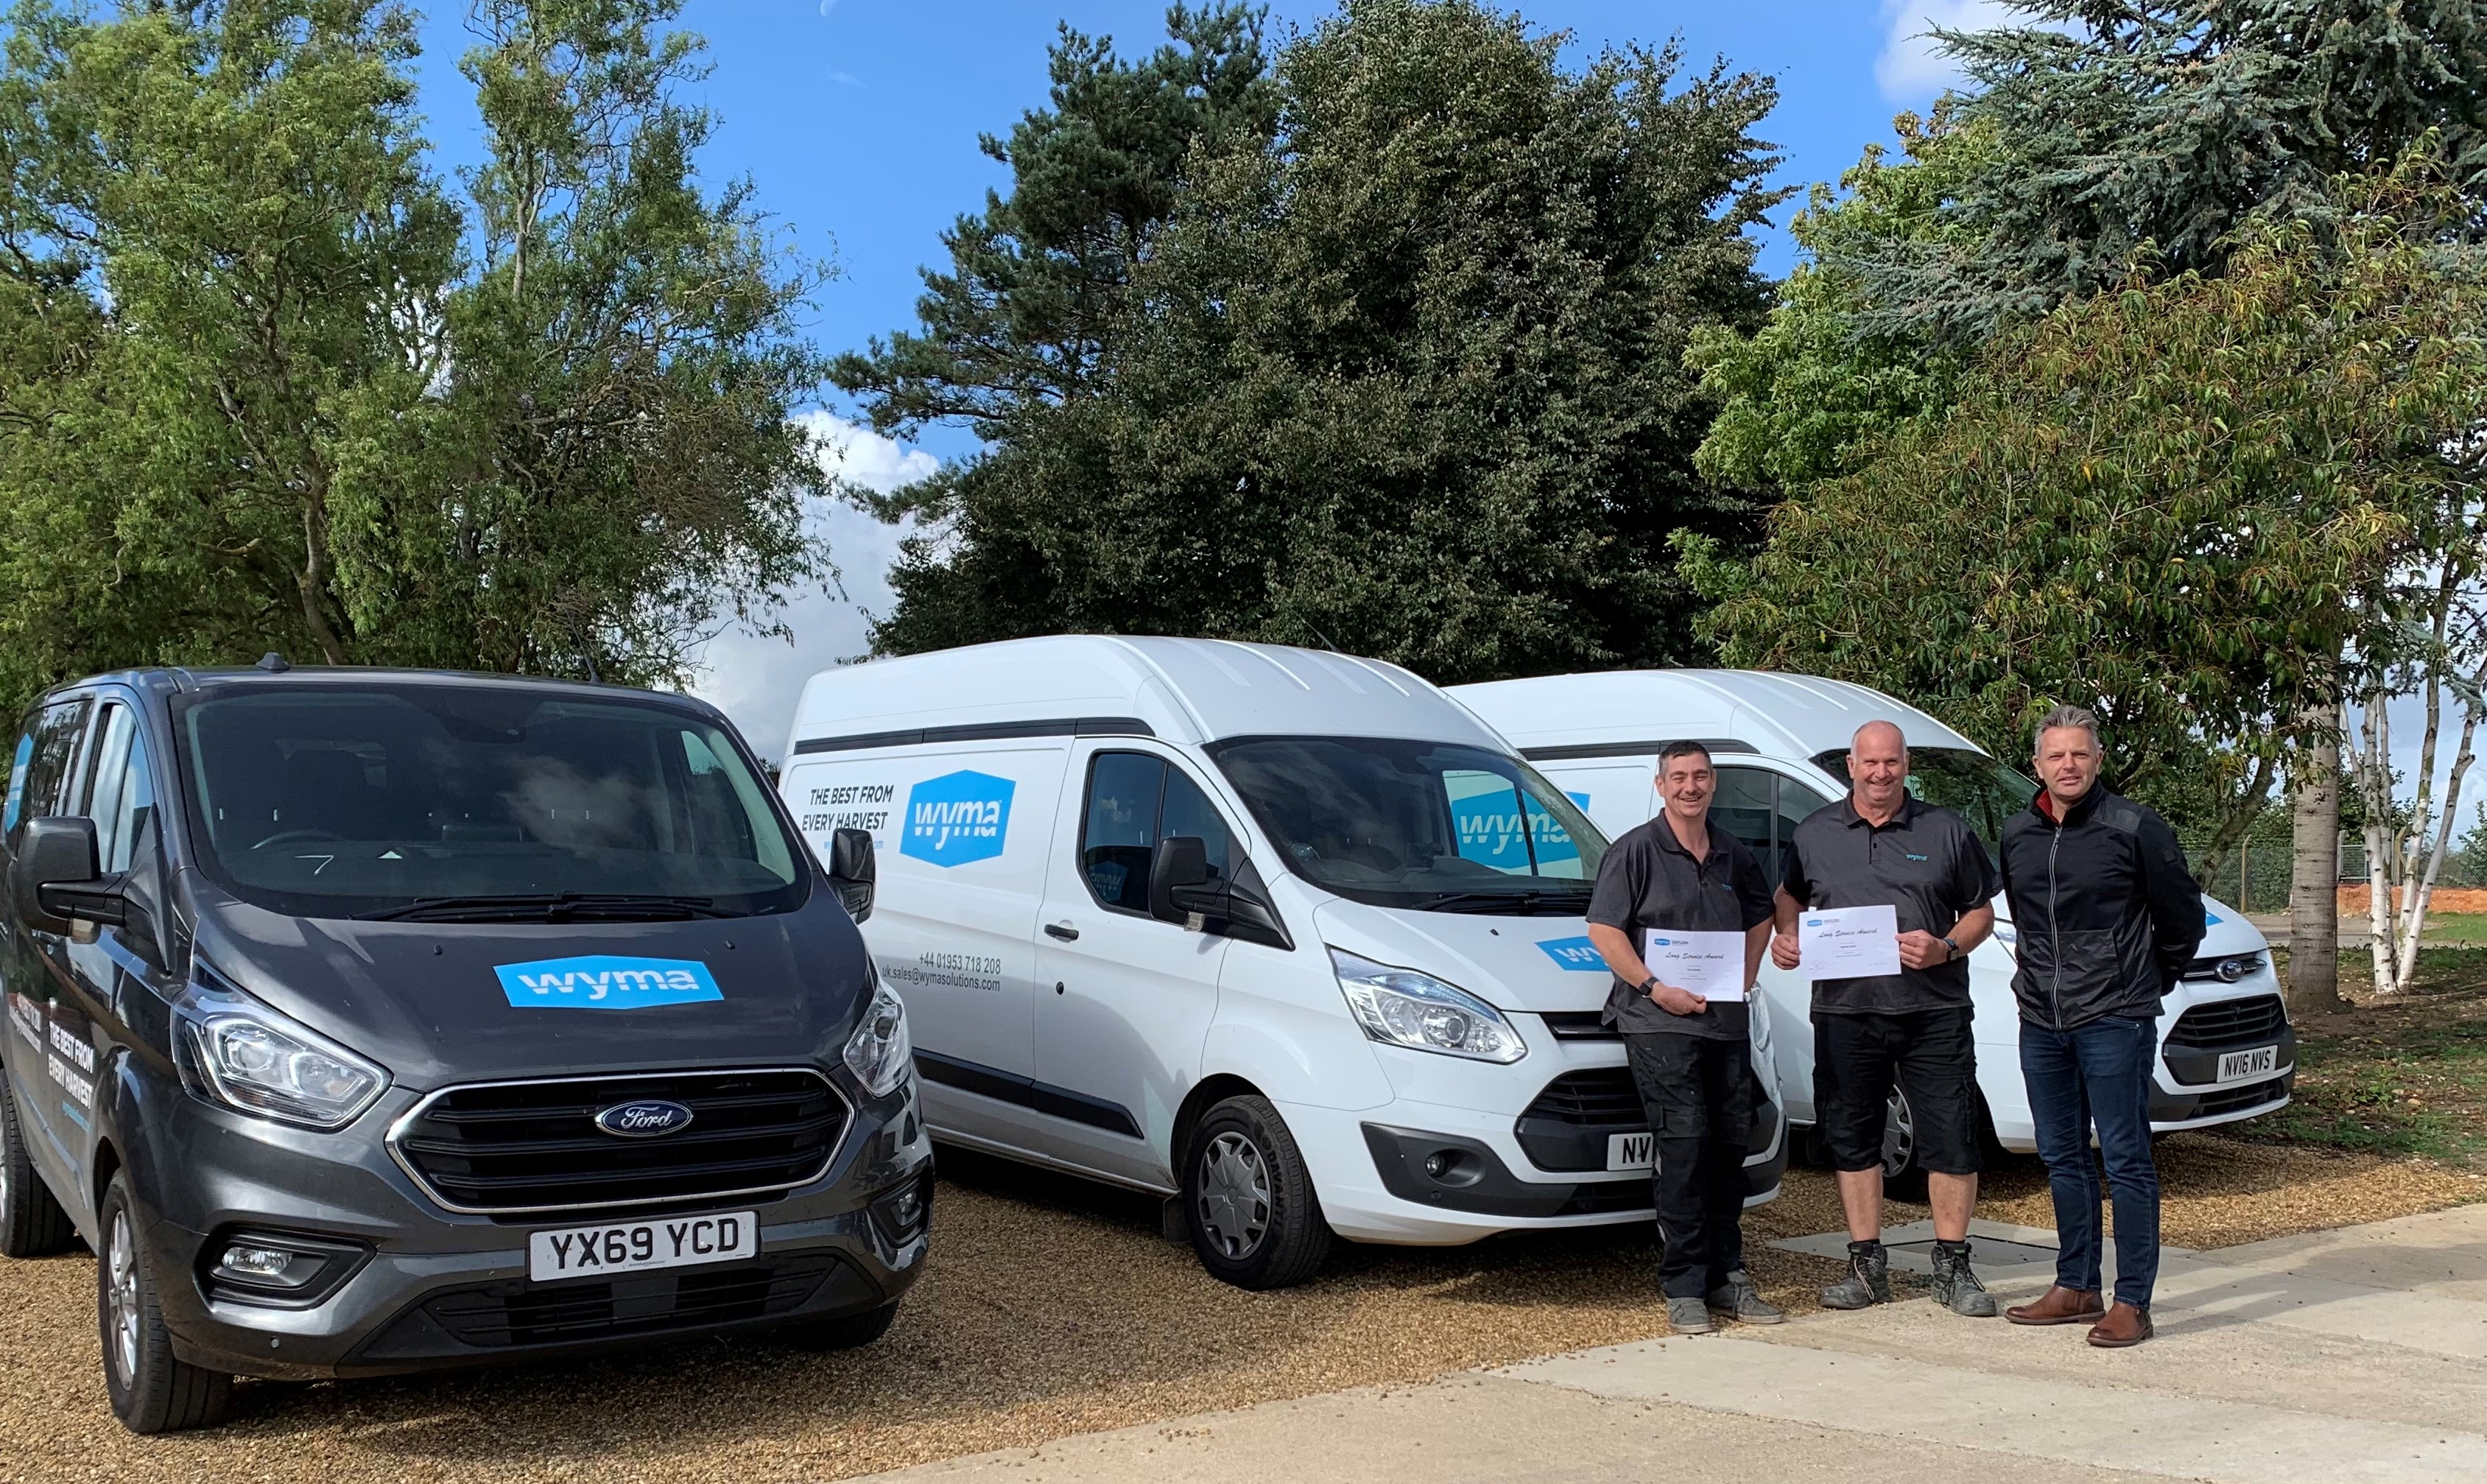 Wyma UK recognises the importance of dedicated service